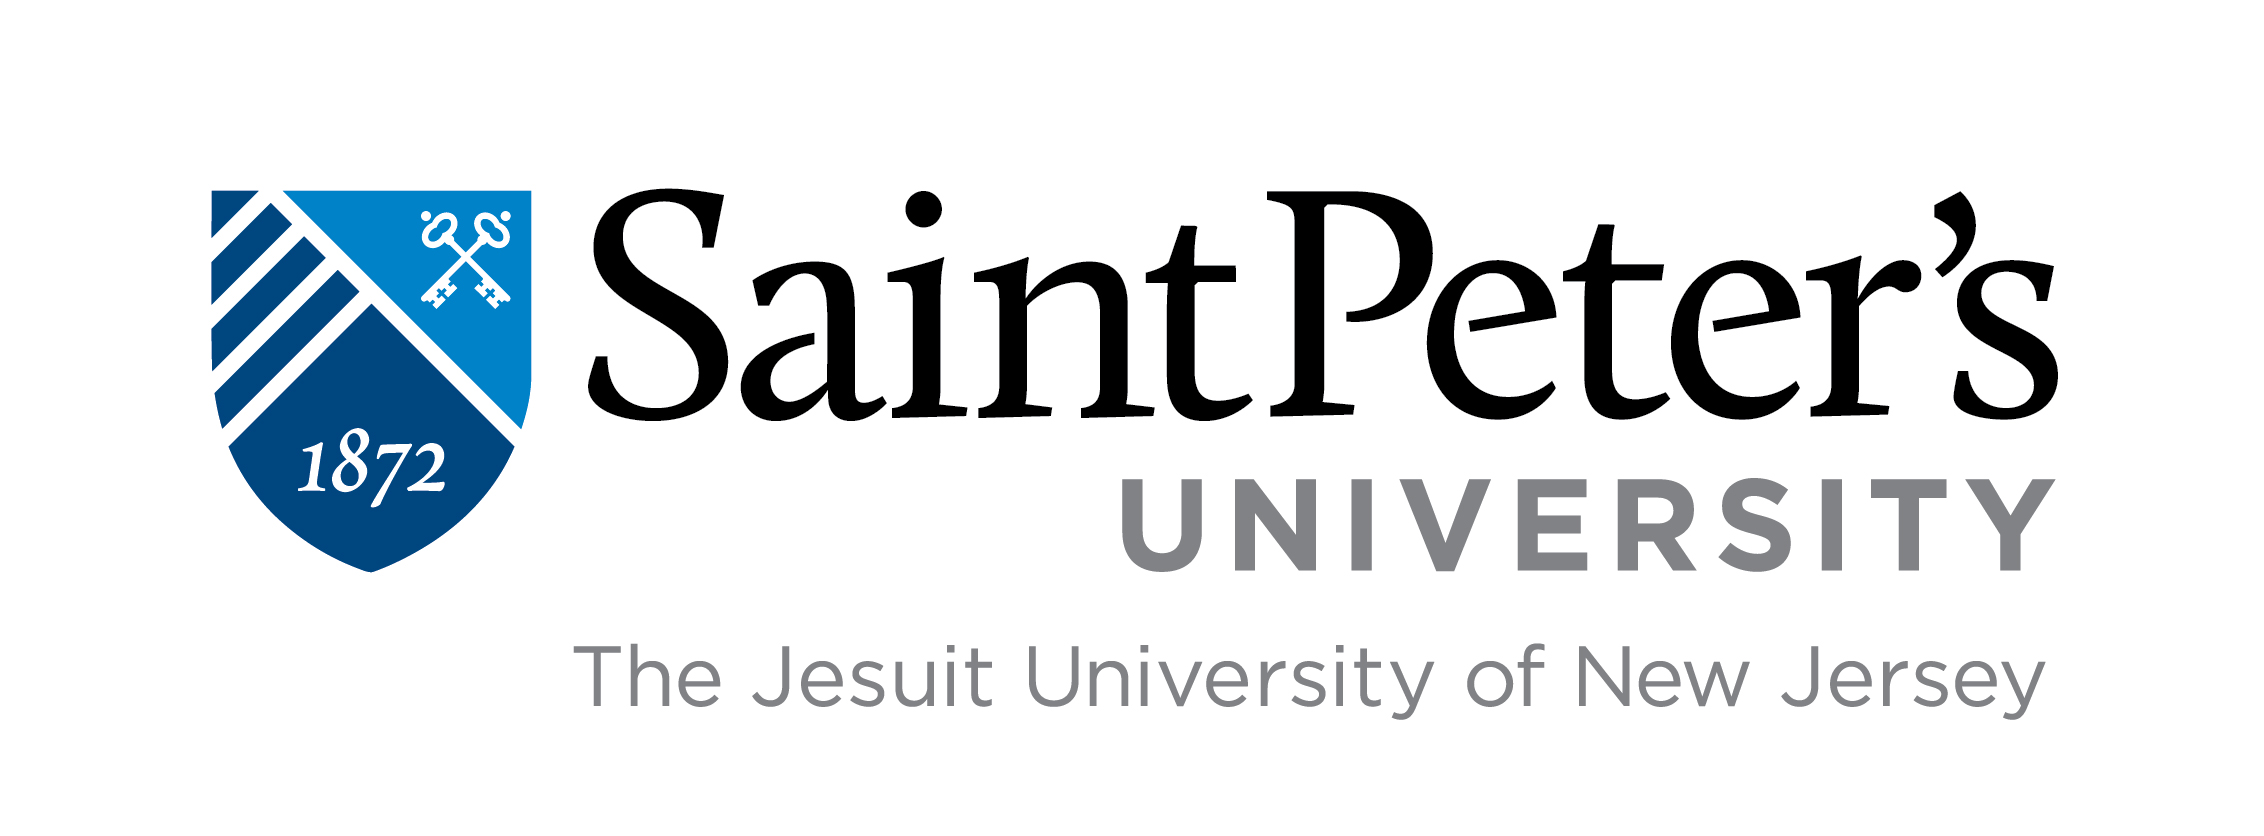 Saint Peters University - Communications - Logos and Graphic Usage Guide